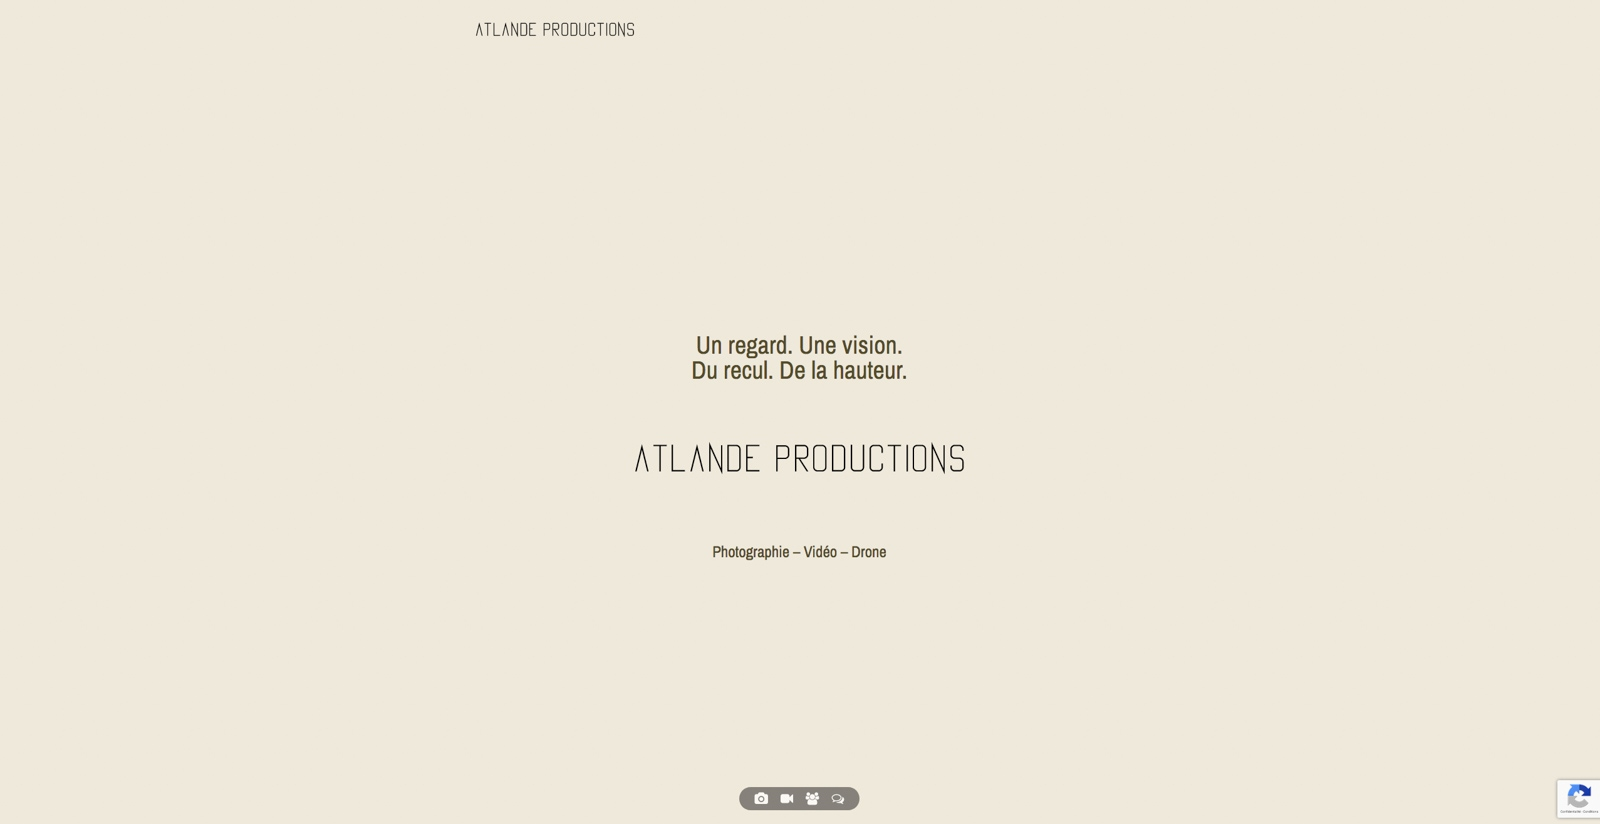 Atlande Productions